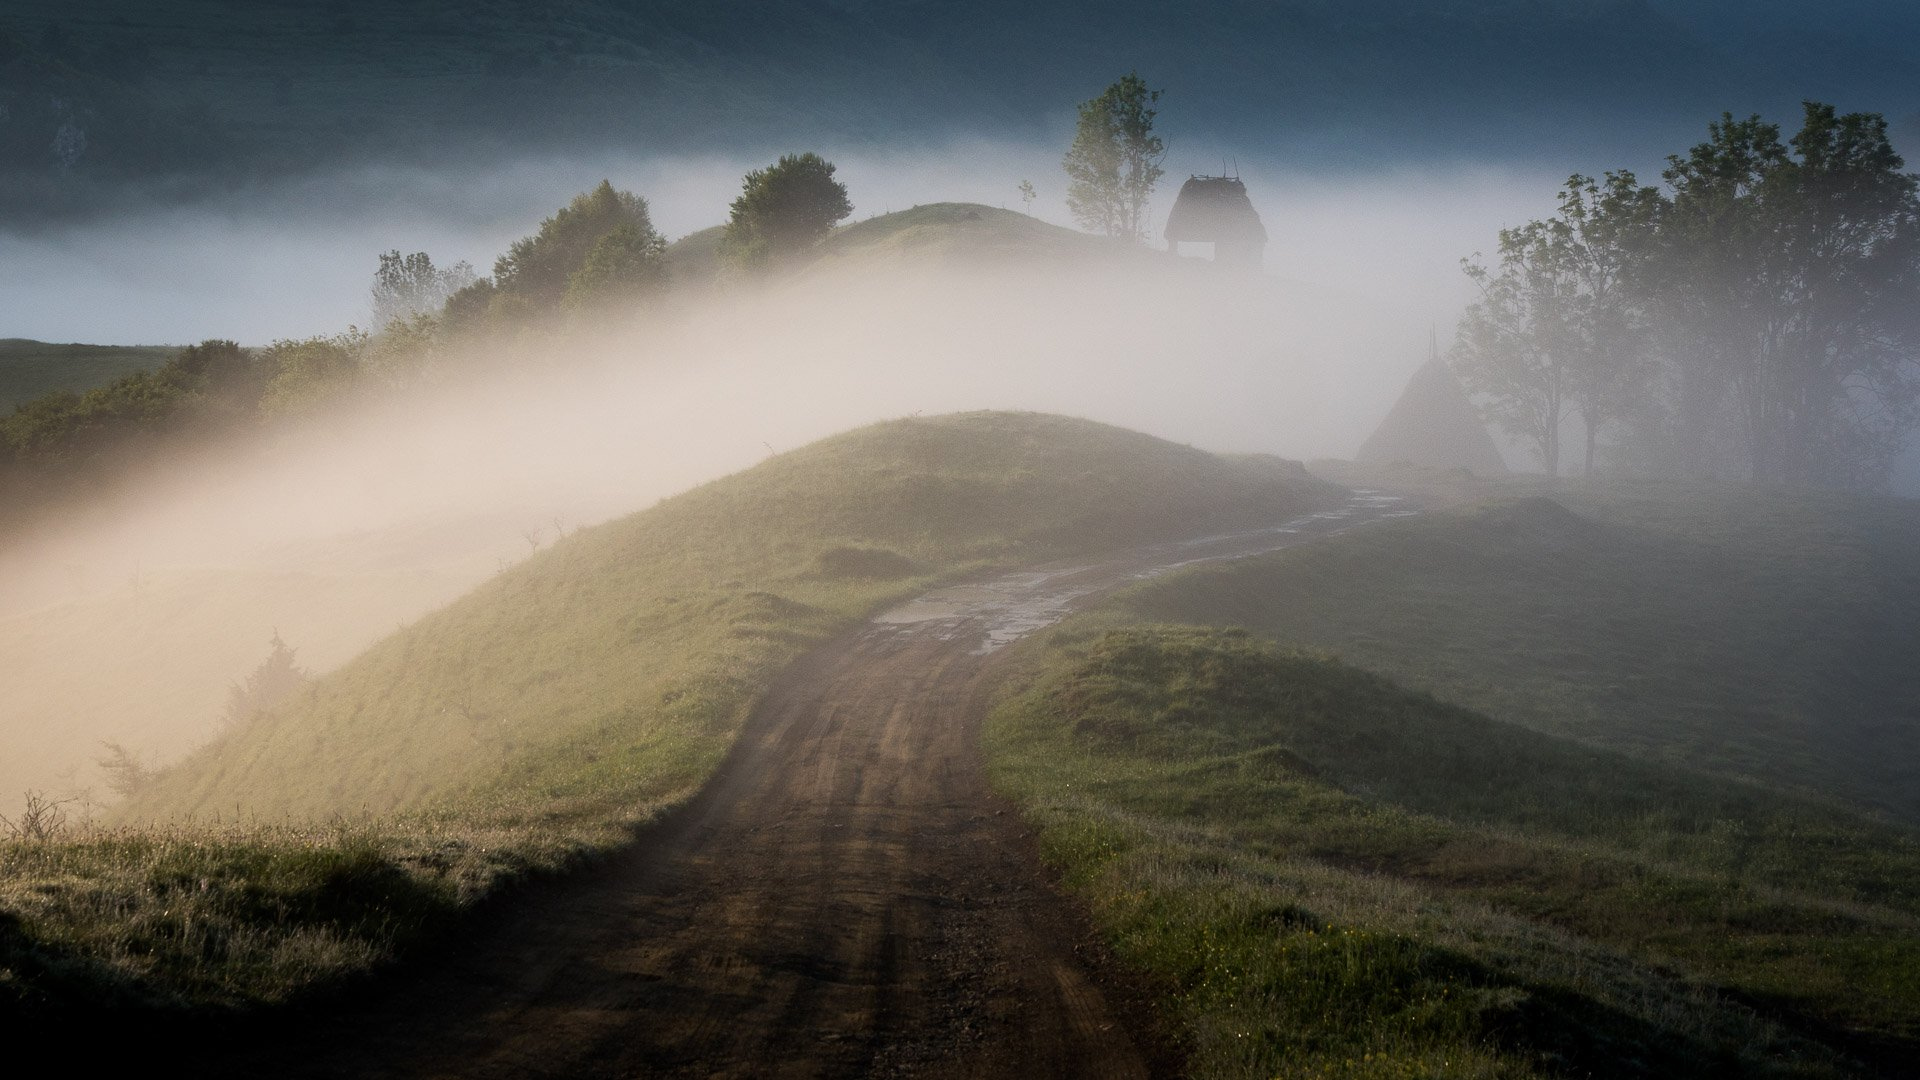 Sunrise shoot in mountainous Transylvania